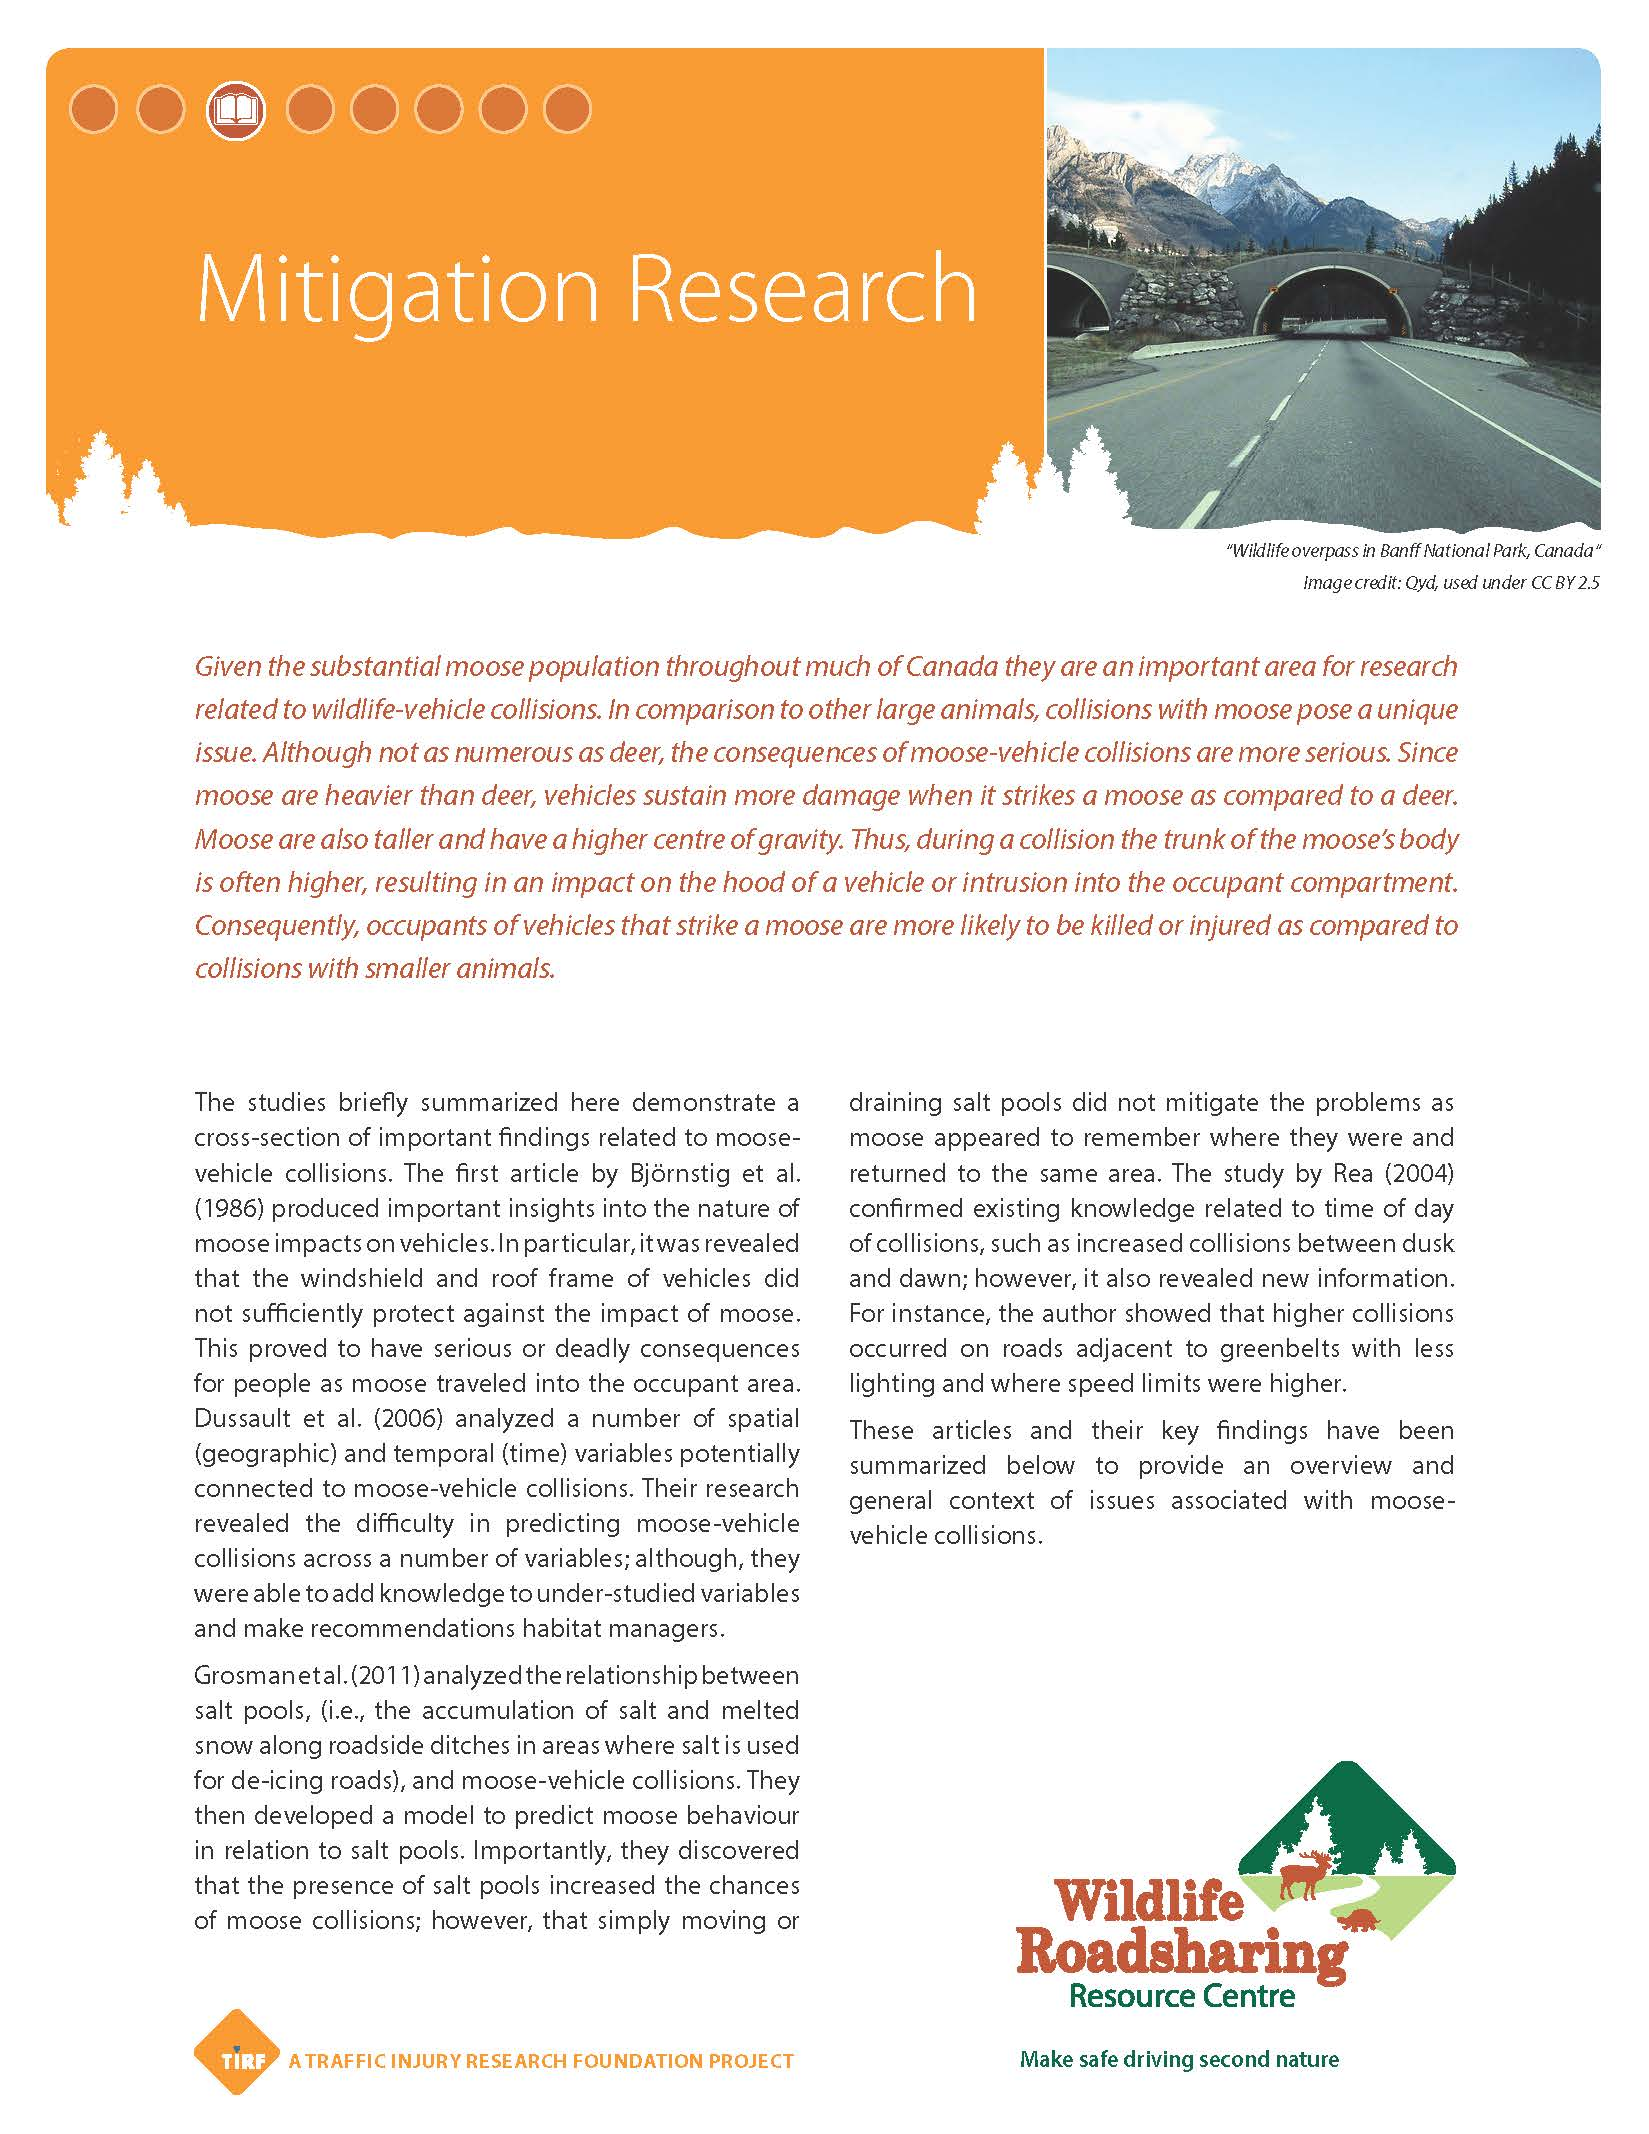 Mitigation Research Handout